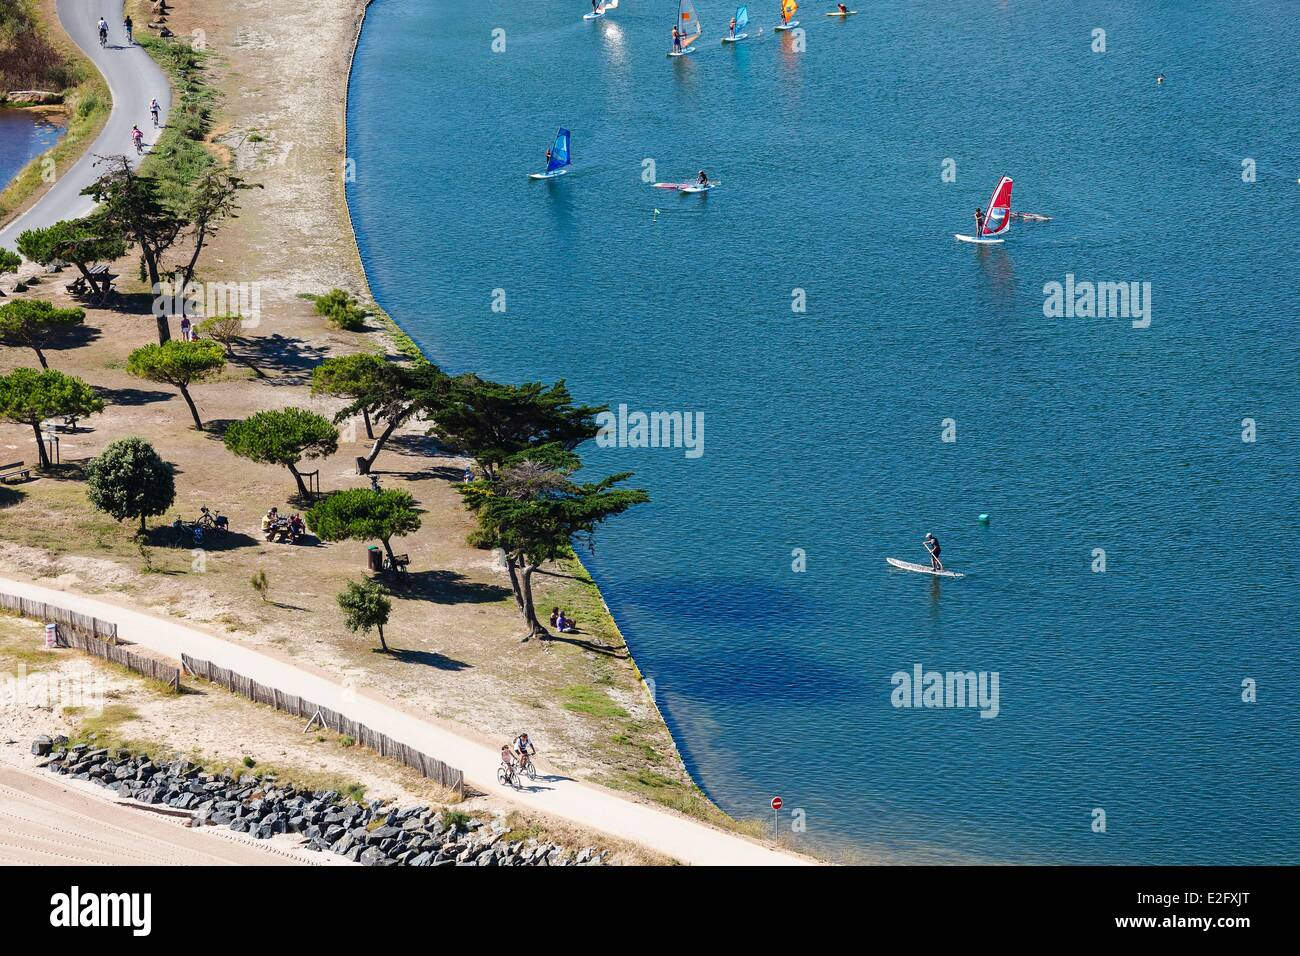 France Charente Maritime Ile de Re La Couarde sur Mer summer leisures bike picnic windsuf and paddle (aerial view) - Stock Image